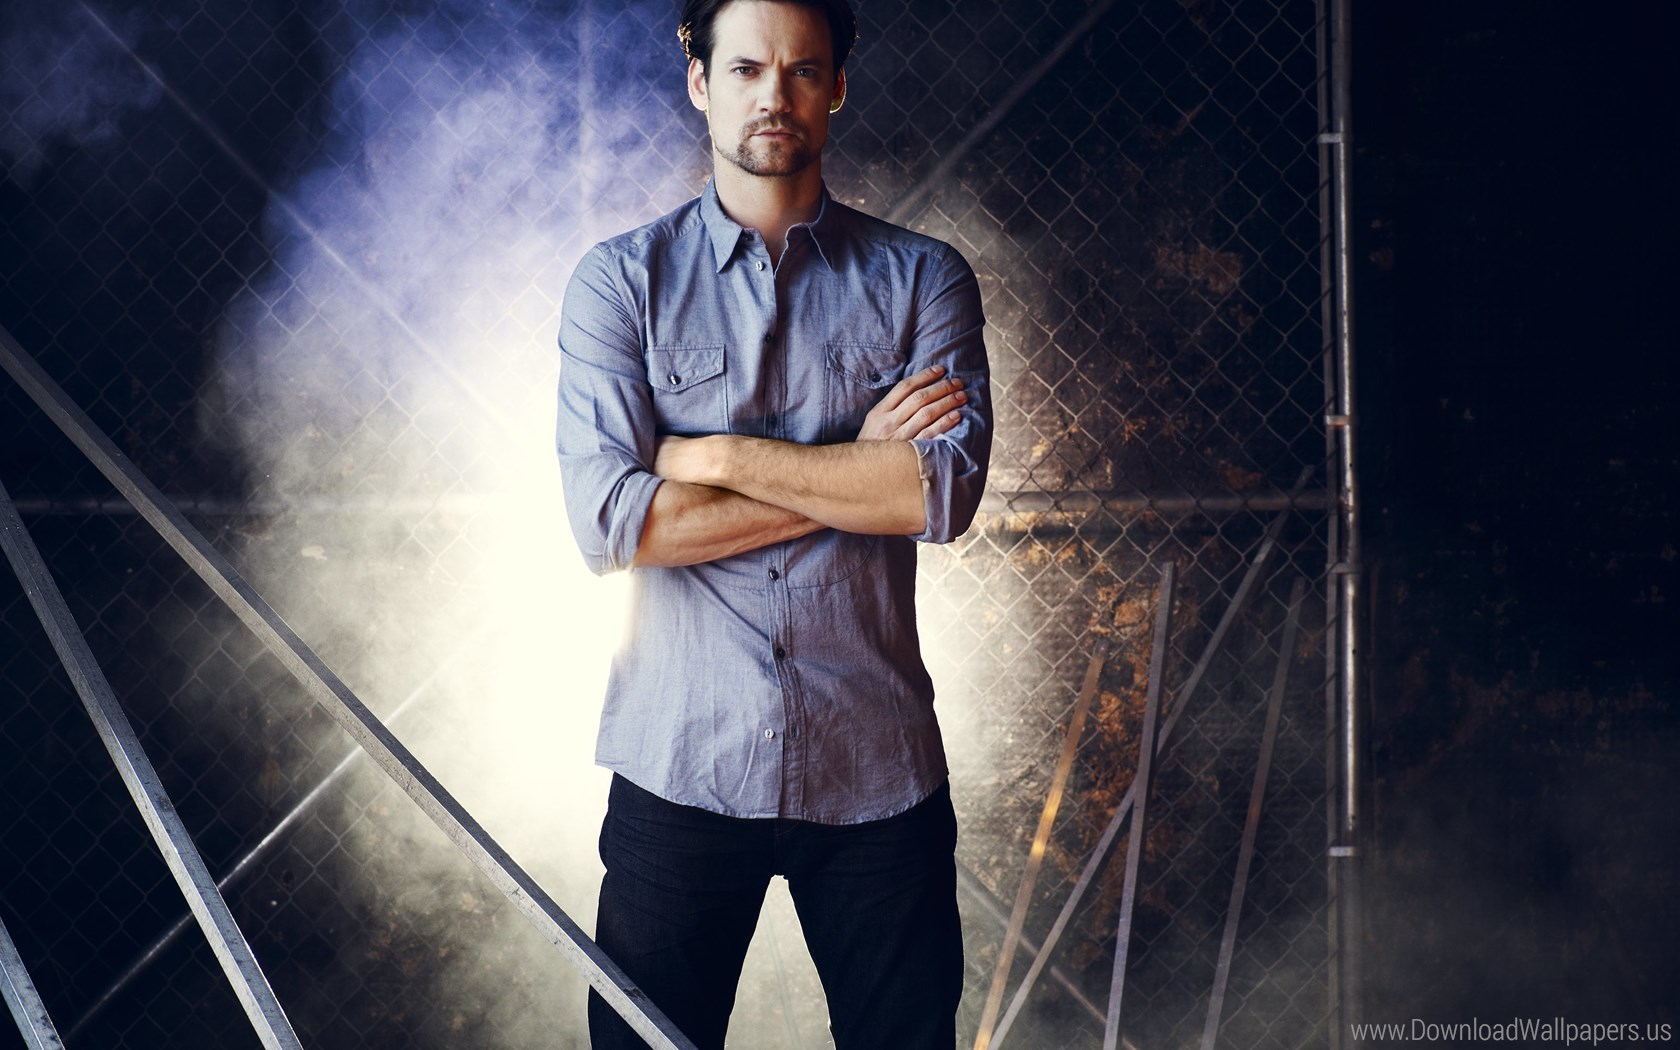 actor celebrity male photoshoot shane west 3200x2400 h